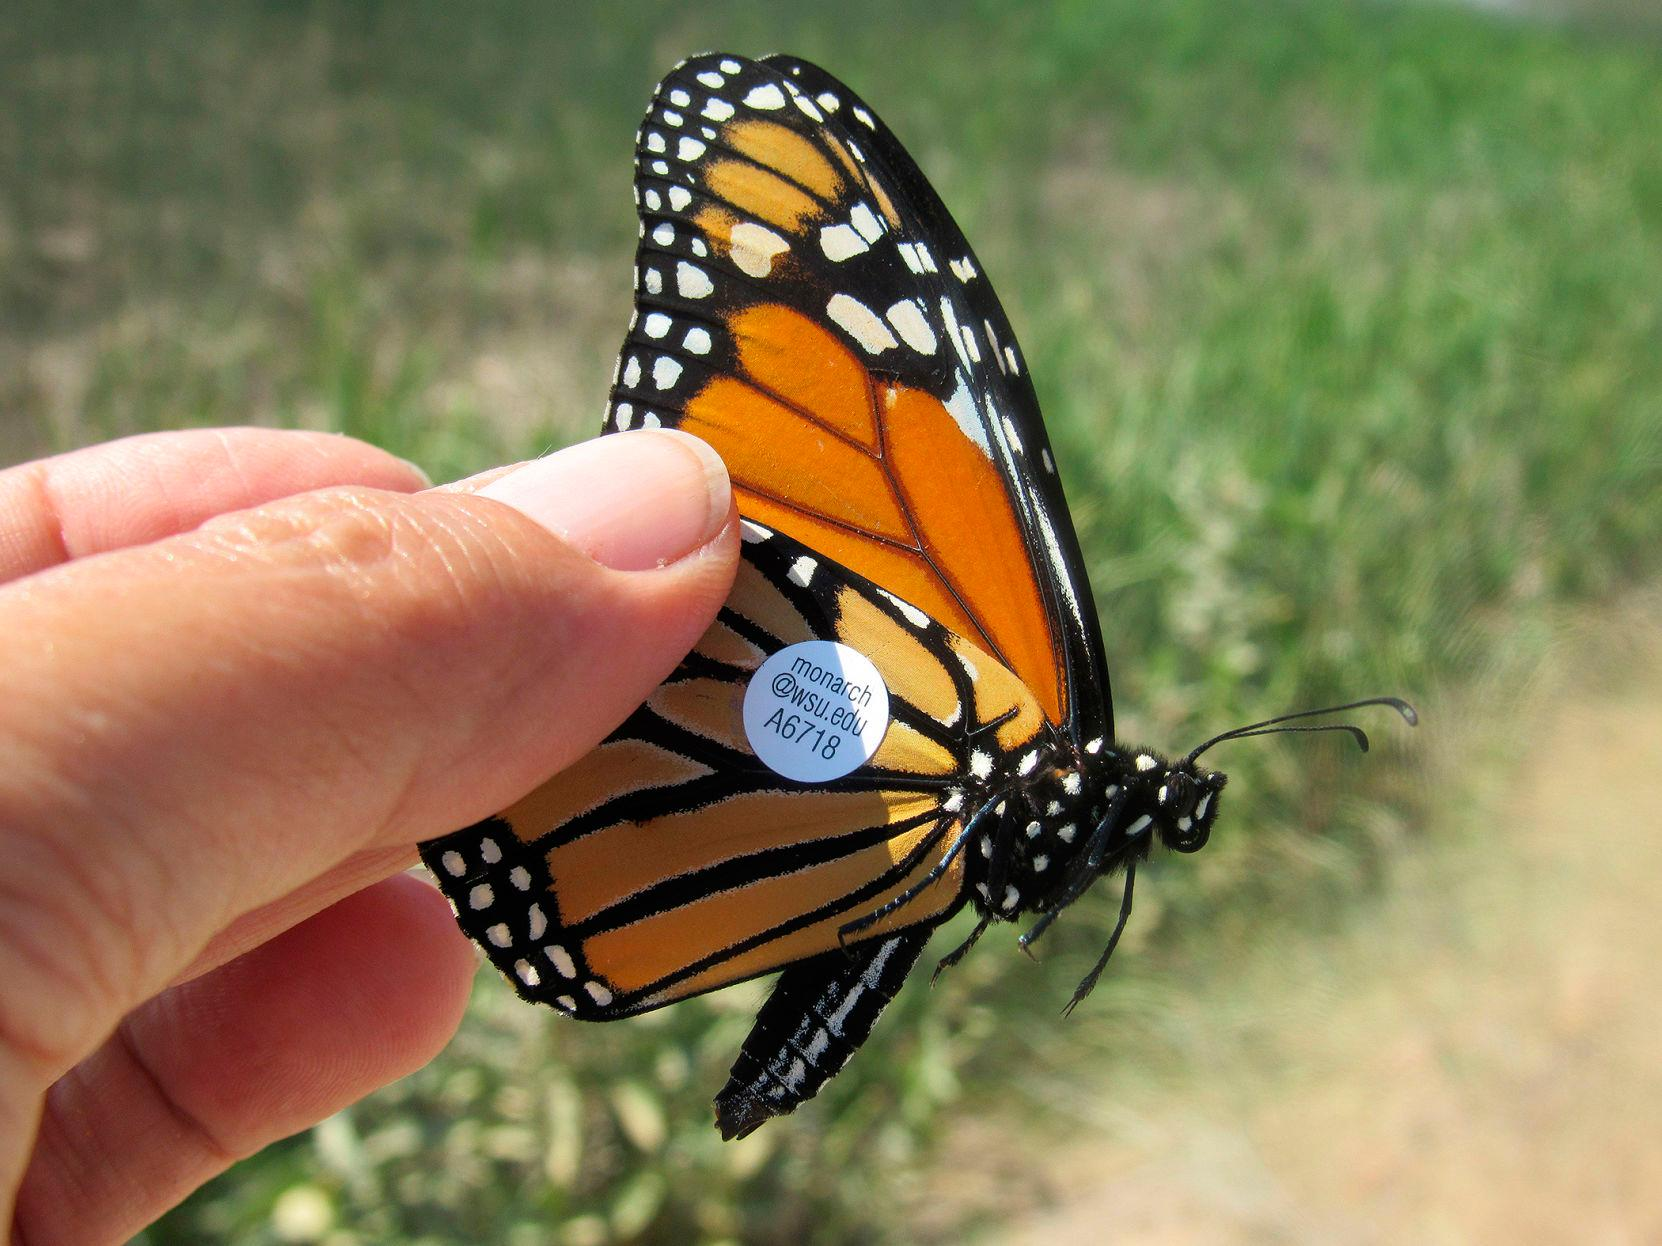 Where Have All Monarchs Gone >> Where Have All The Butterflies Gone Monarch Butterflies All But